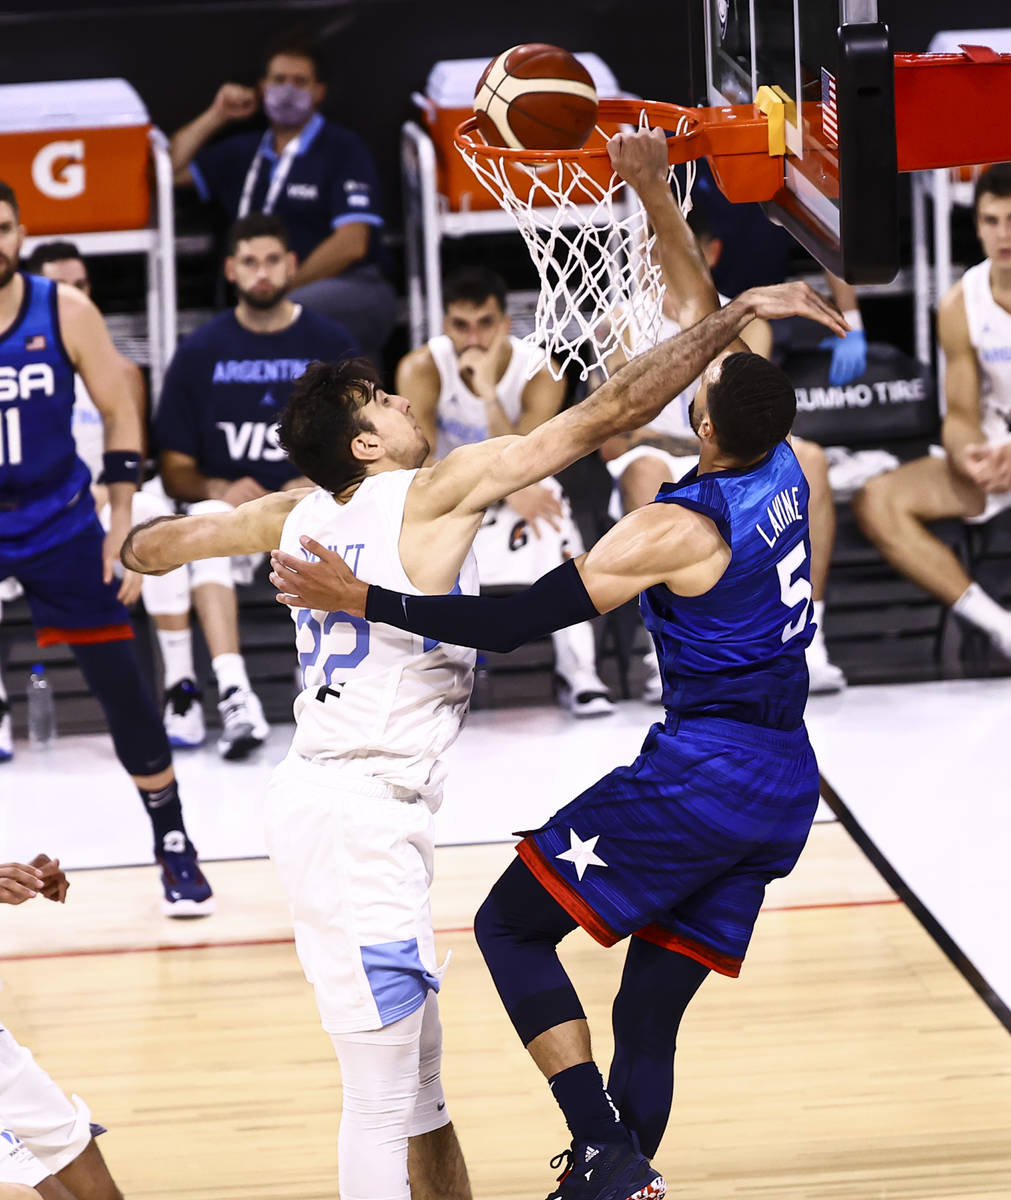 USAÕs Zach Lavine (5) dunks the ball while being fouled by ArgentinaÕs Juan Pablo Vau ...